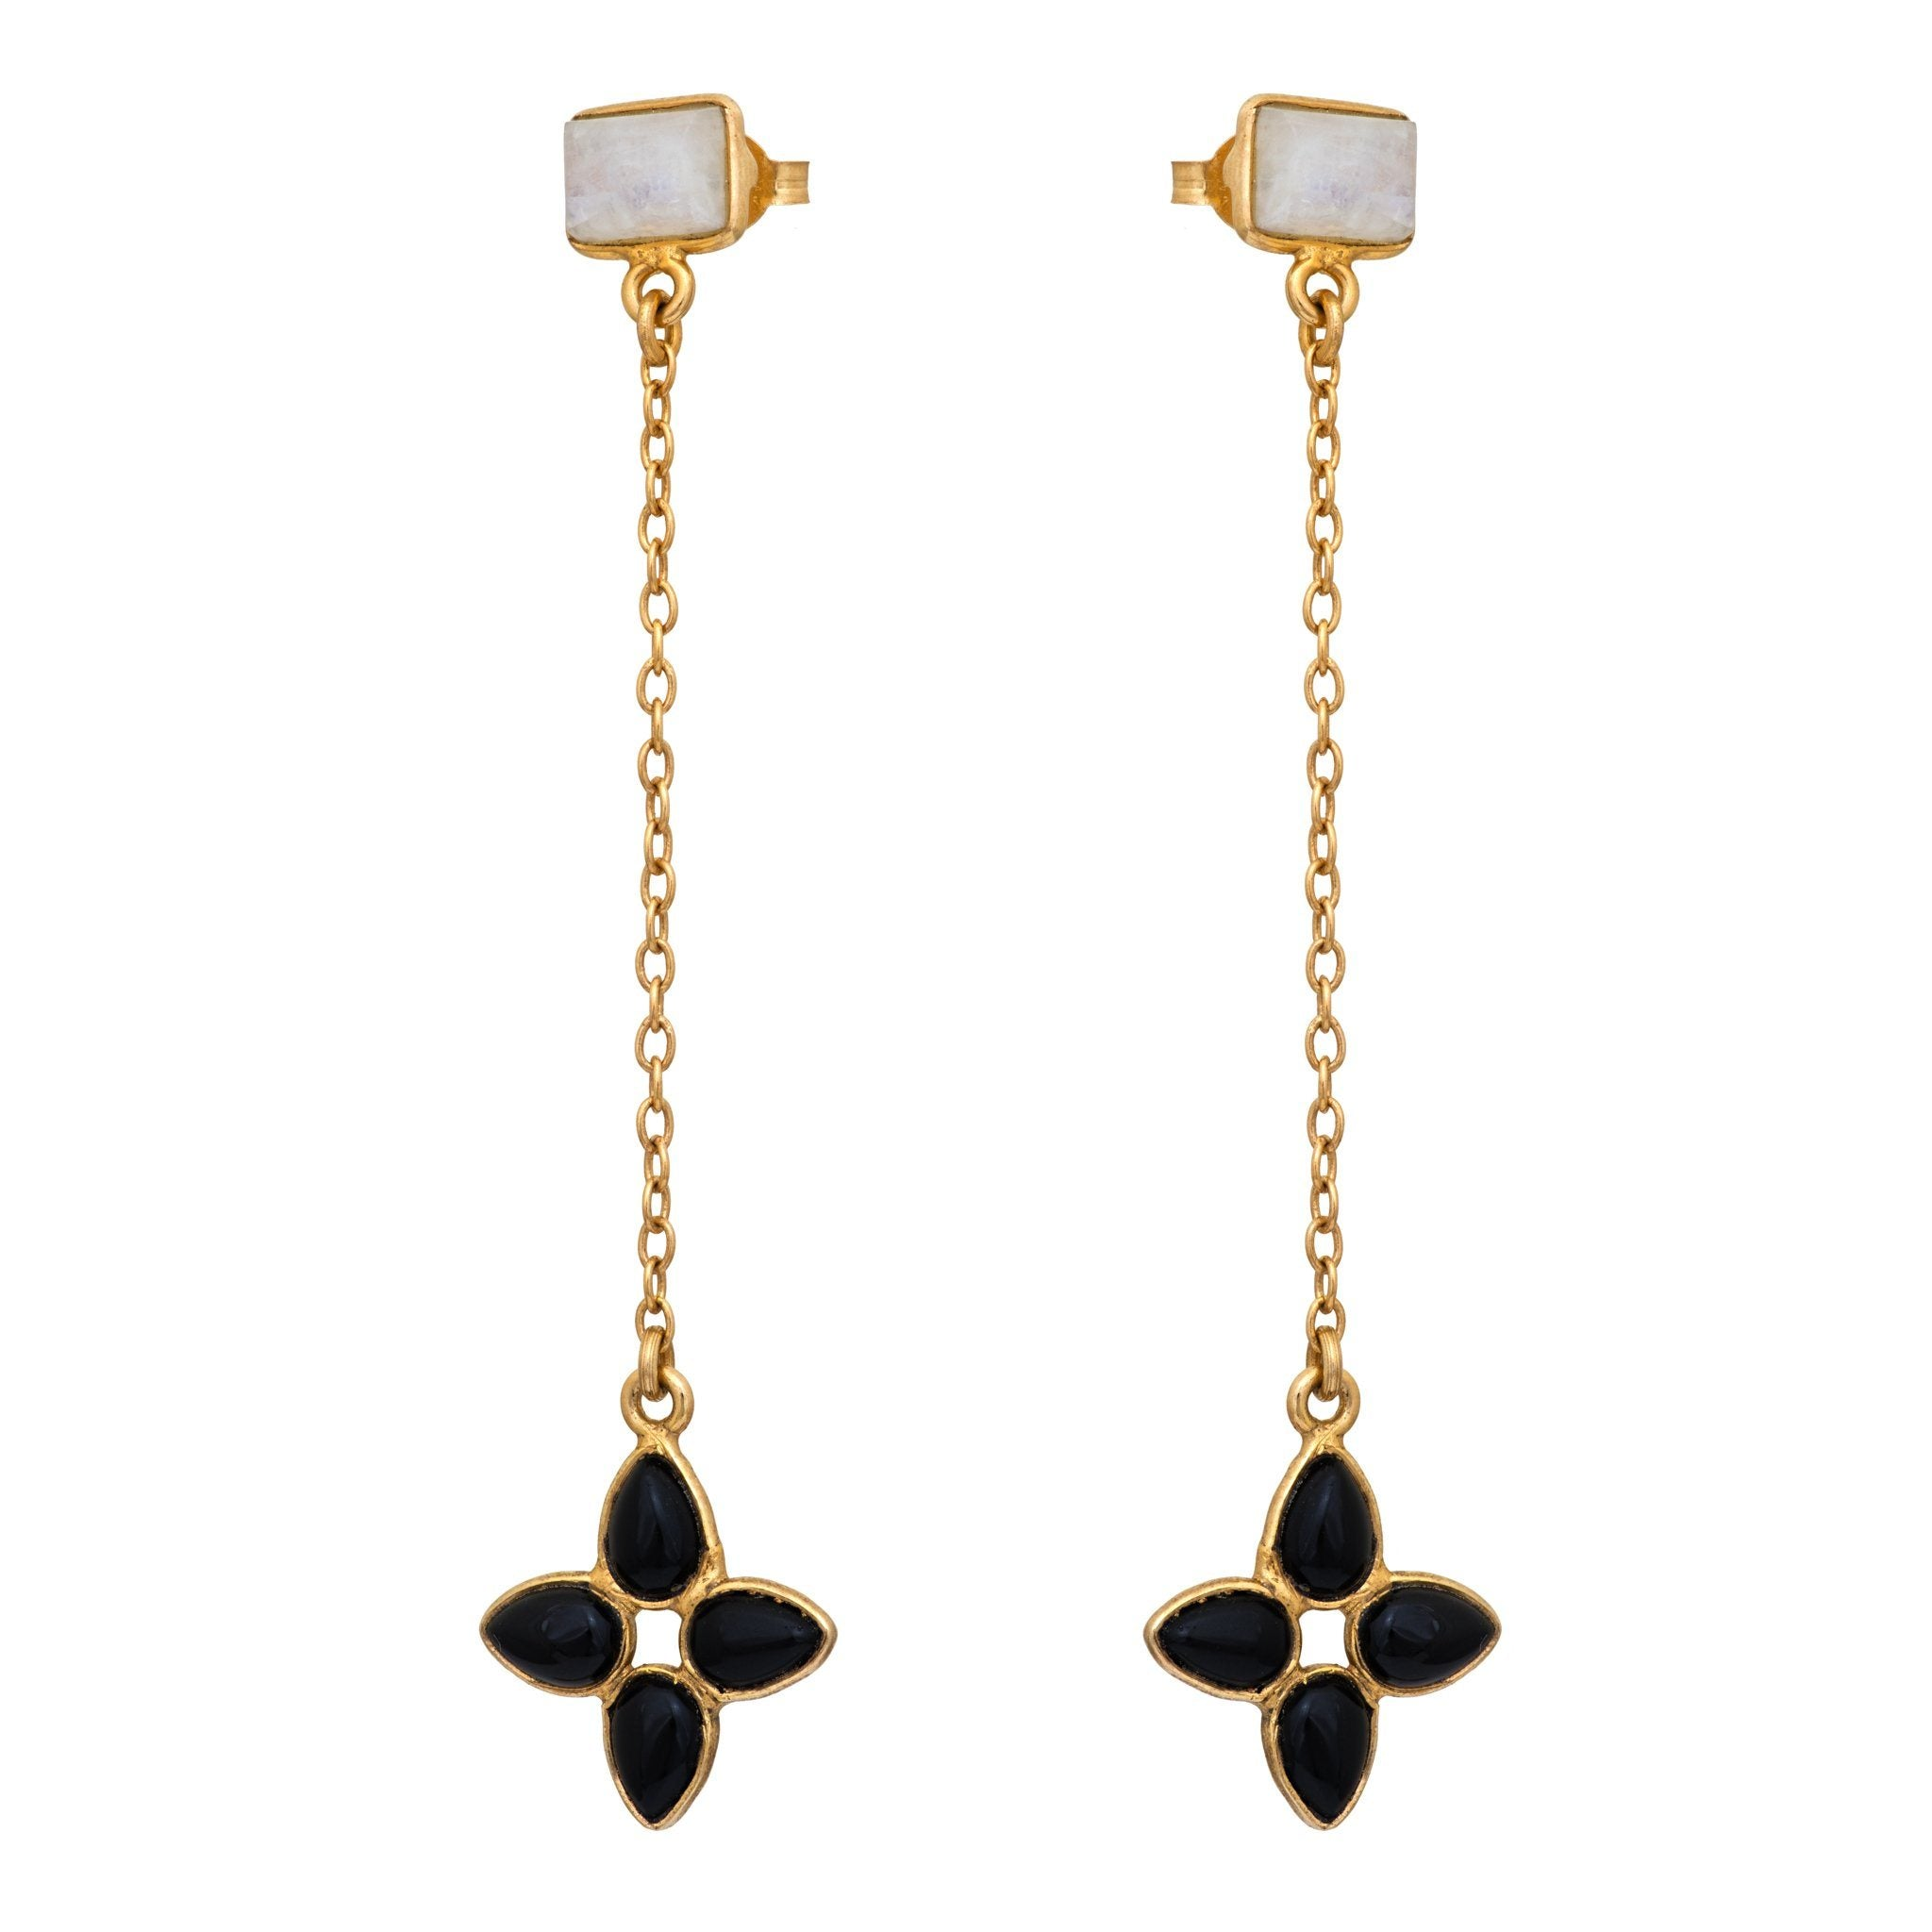 FLORA black onyx earrings - MadamSiam